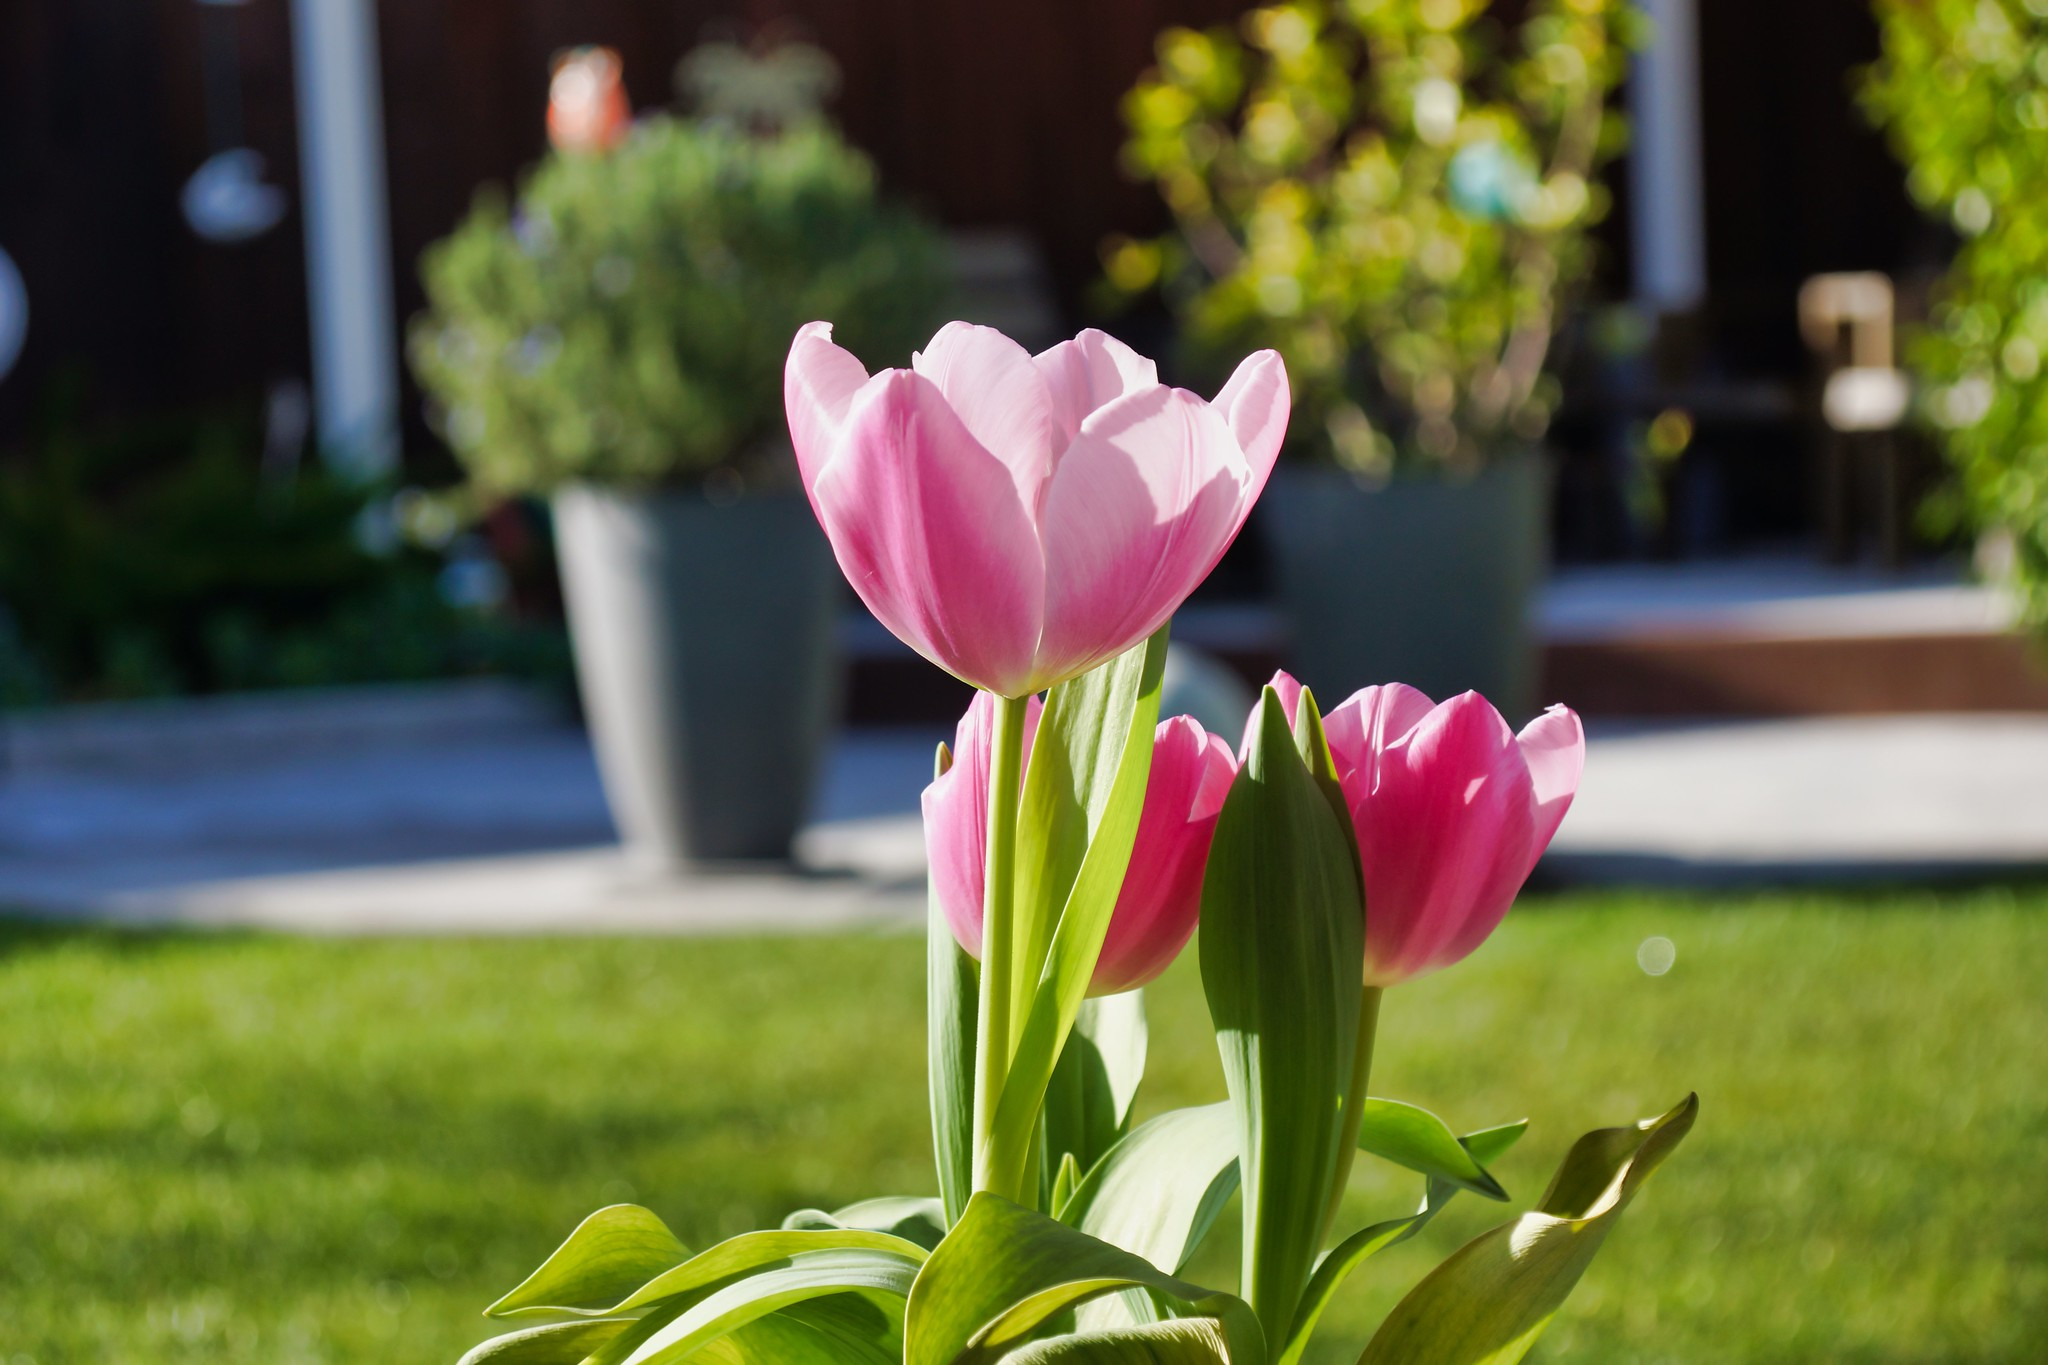 2019-02-11 - Nature Photography - Flowers - Tulips